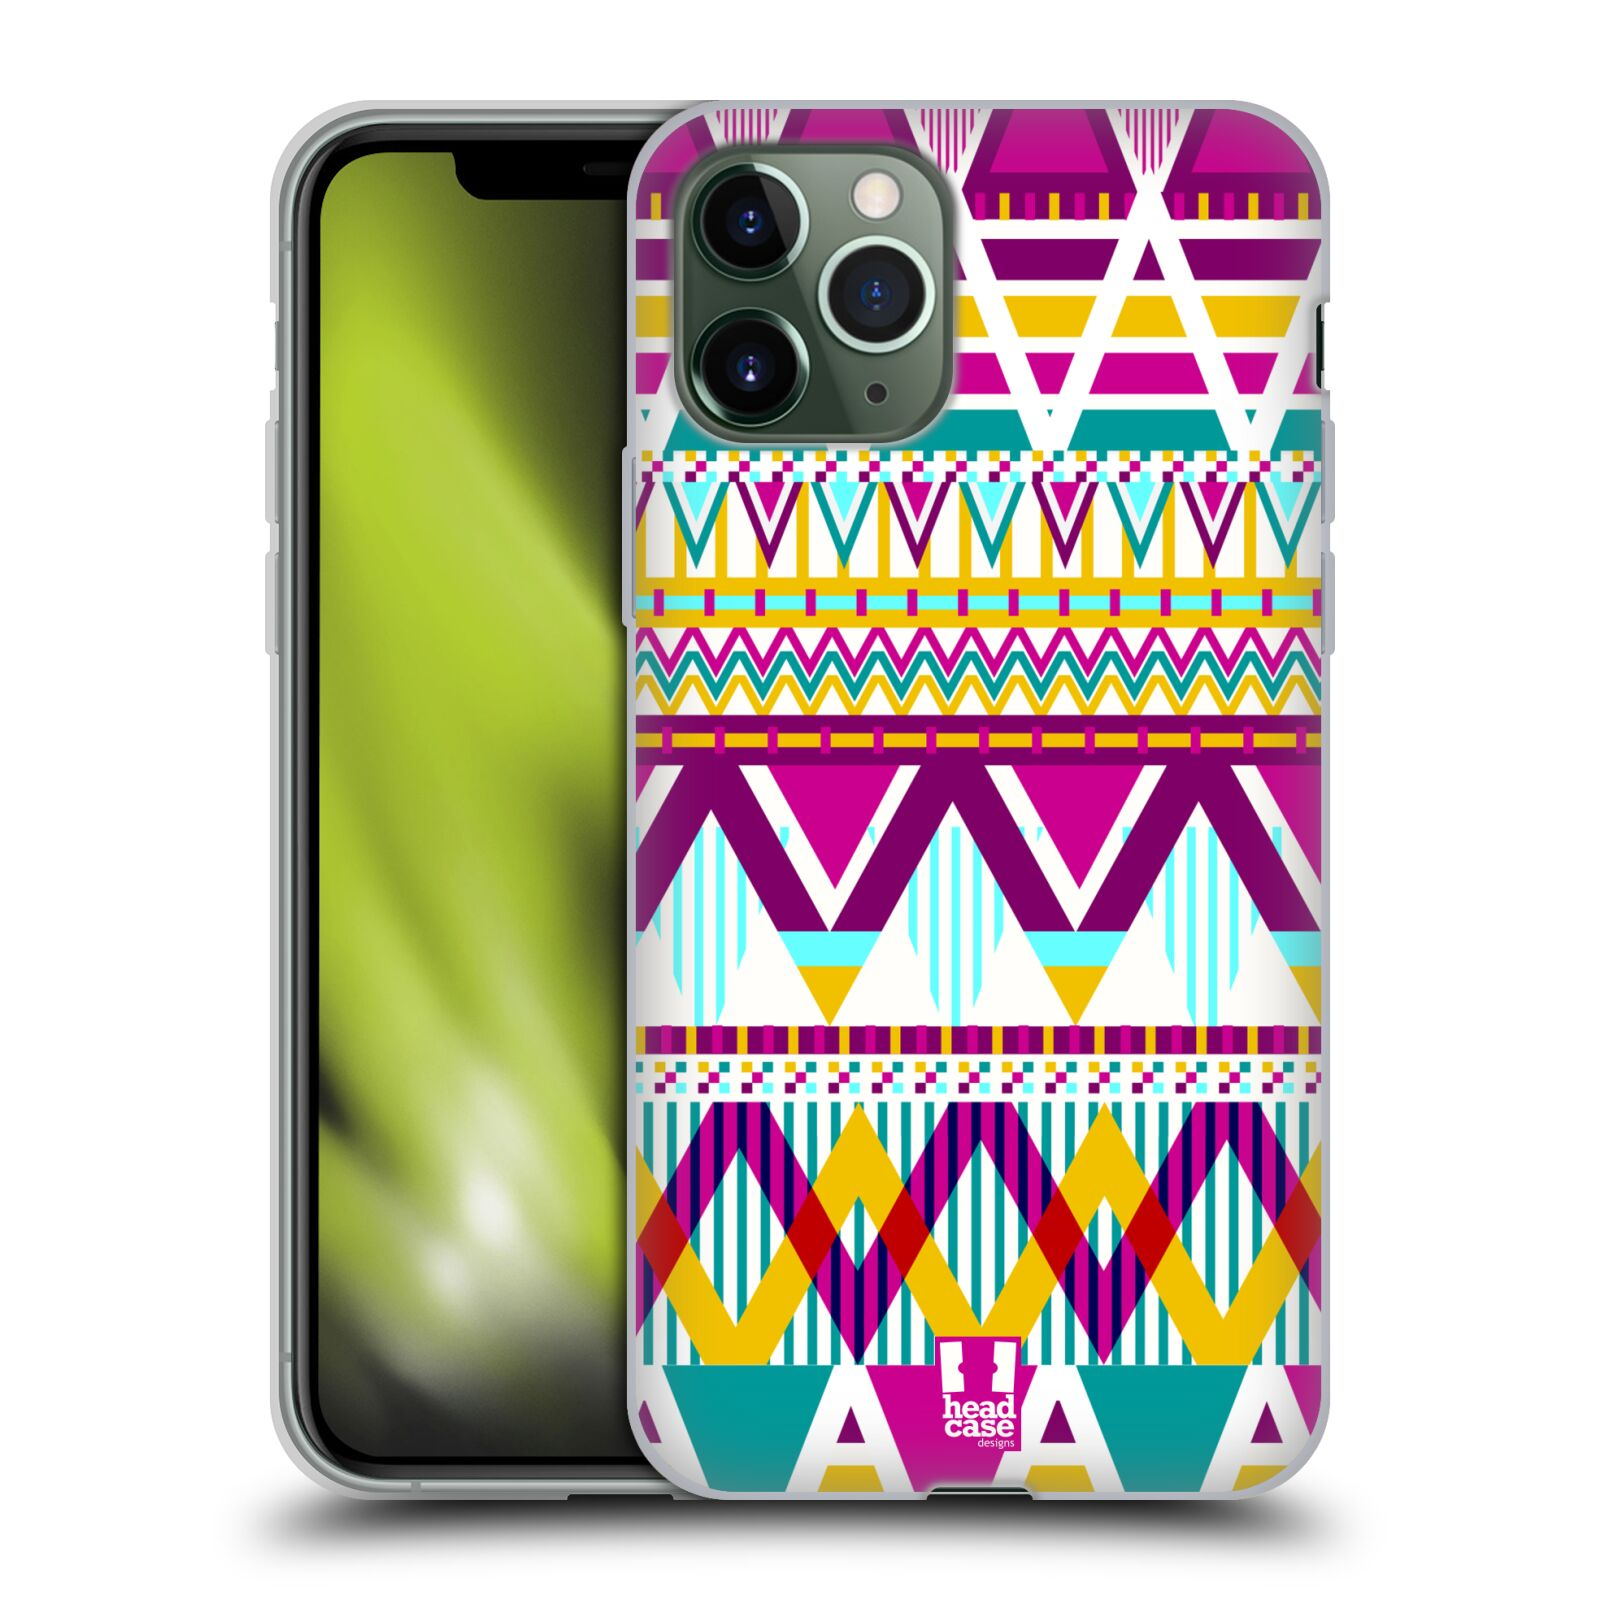 original krytu na iphone xs max - Silikonové pouzdro na mobil Apple iPhone 11 Pro - Head Case - AZTEC SUGARED